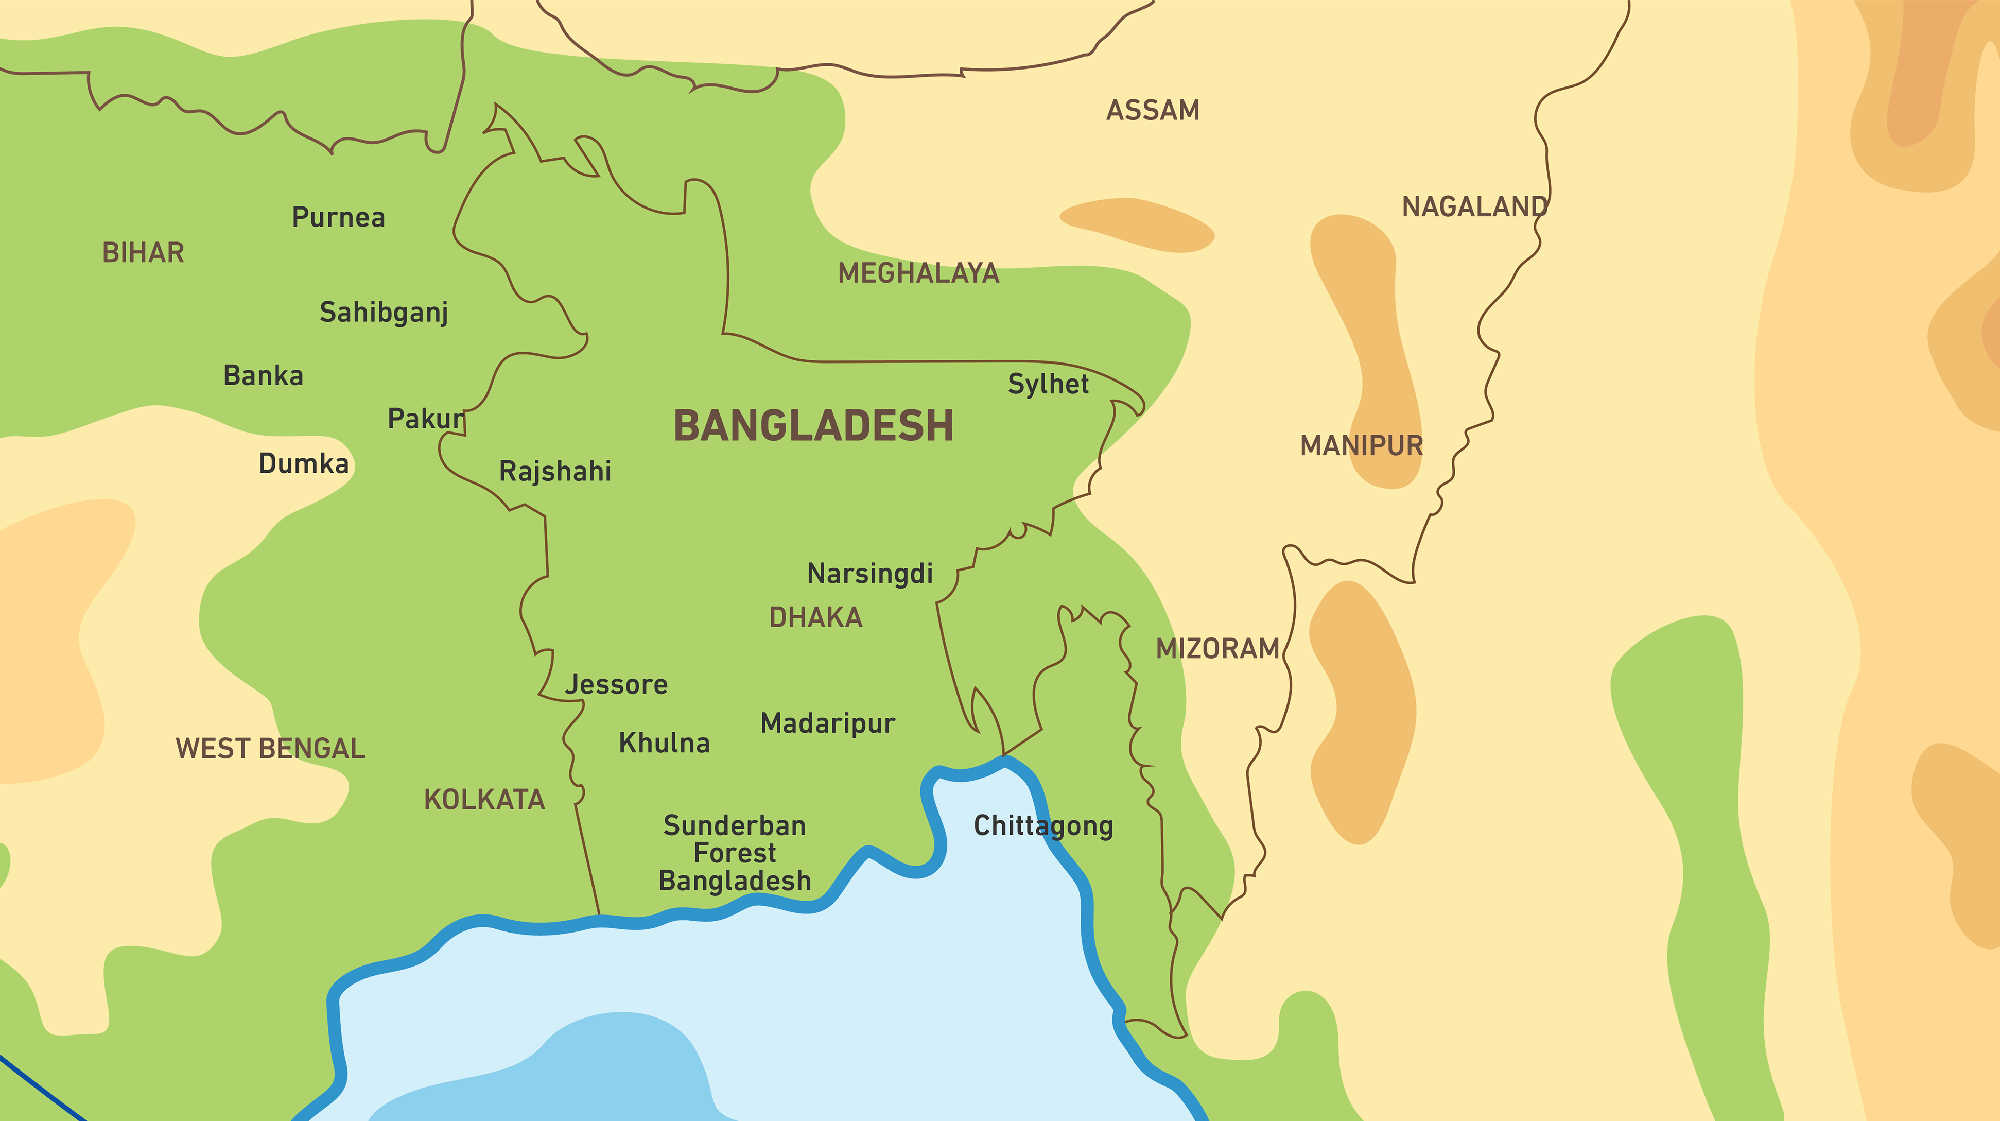 Map of Kacific 1 sattellite coverage of Bangladesh